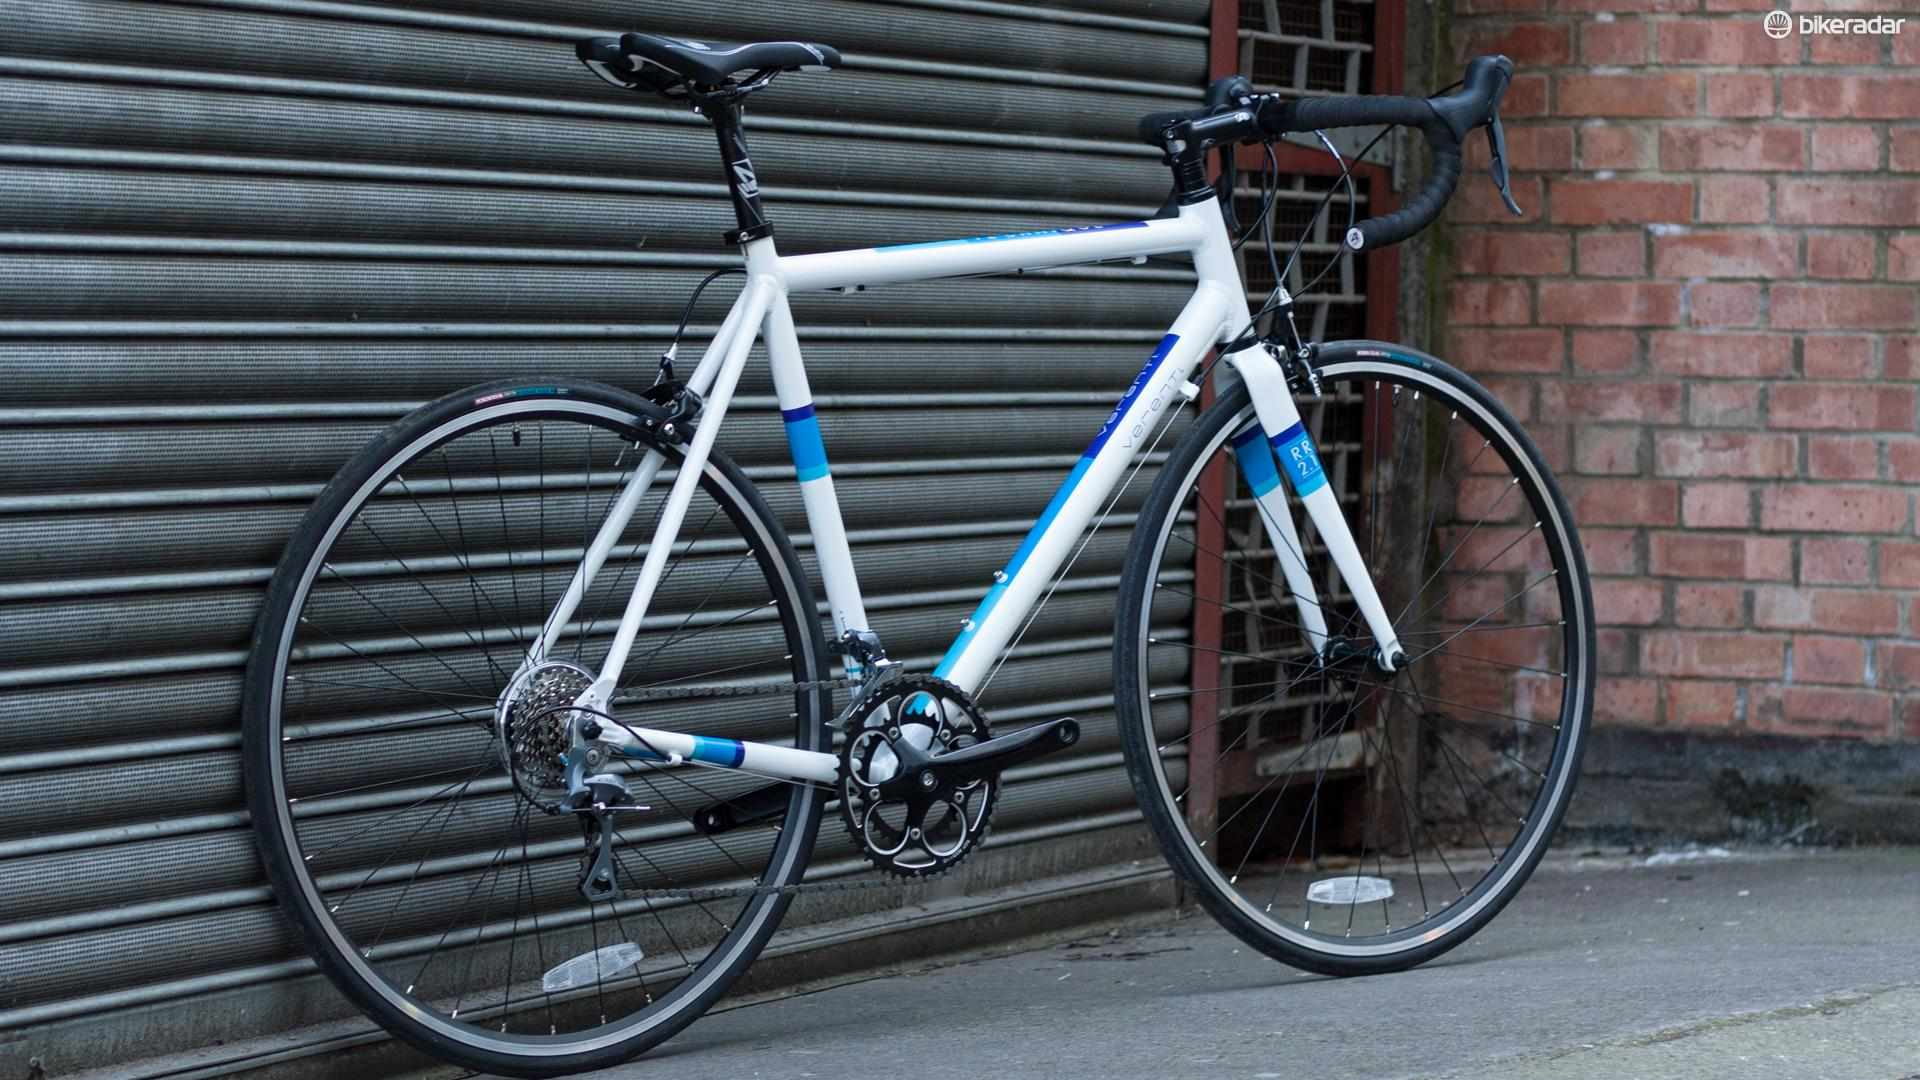 The Verenti Technique appears to offer exceptional value for its £399 price